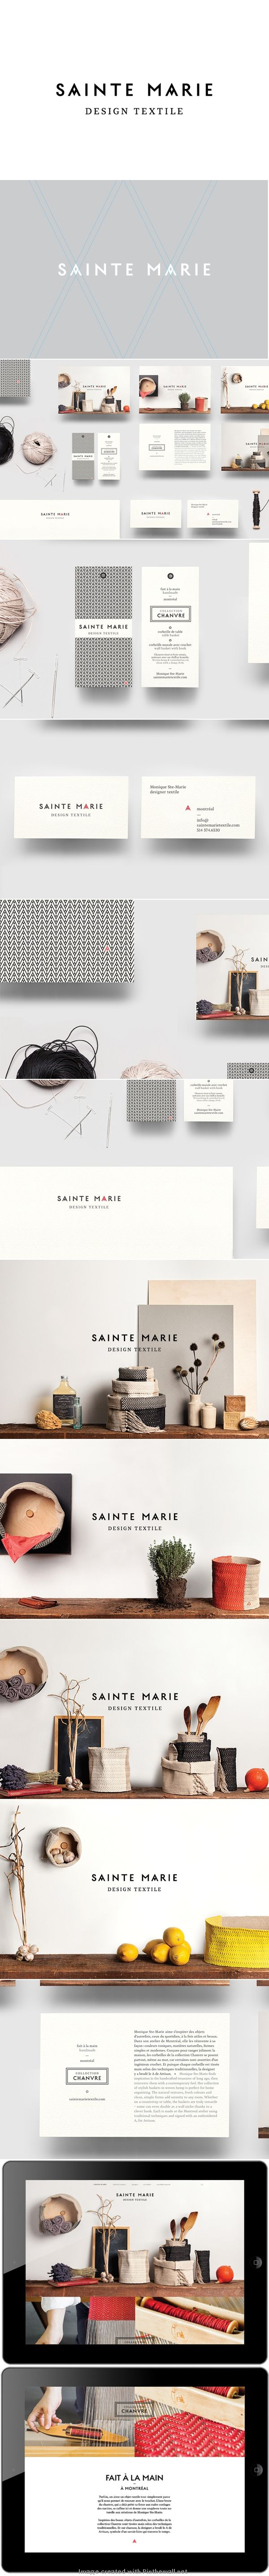 Sainte marie corporate identity branding graphic textile design business card website label